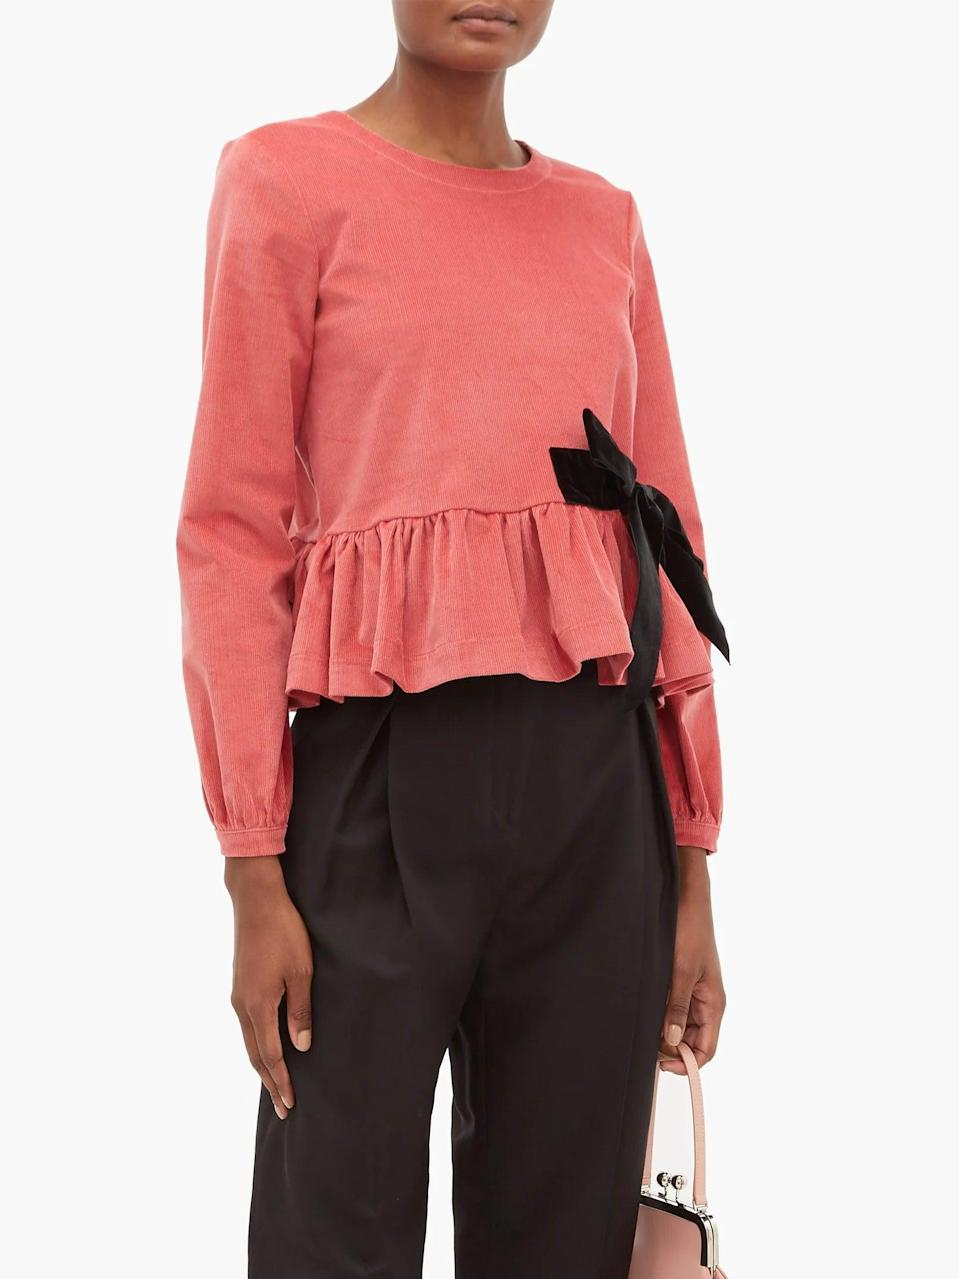 """<br><br><strong>Molly Goddard</strong> Willow Stretch Cotton Corduroy Peplum Top, $, available at <a href=""""https://www.matchesfashion.com/products/Molly-Goddard-Willow-stretch-cotton-corduroy-peplum-top--1304420"""" rel=""""nofollow noopener"""" target=""""_blank"""" data-ylk=""""slk:MatchesFashion.com"""" class=""""link rapid-noclick-resp"""">MatchesFashion.com</a>"""